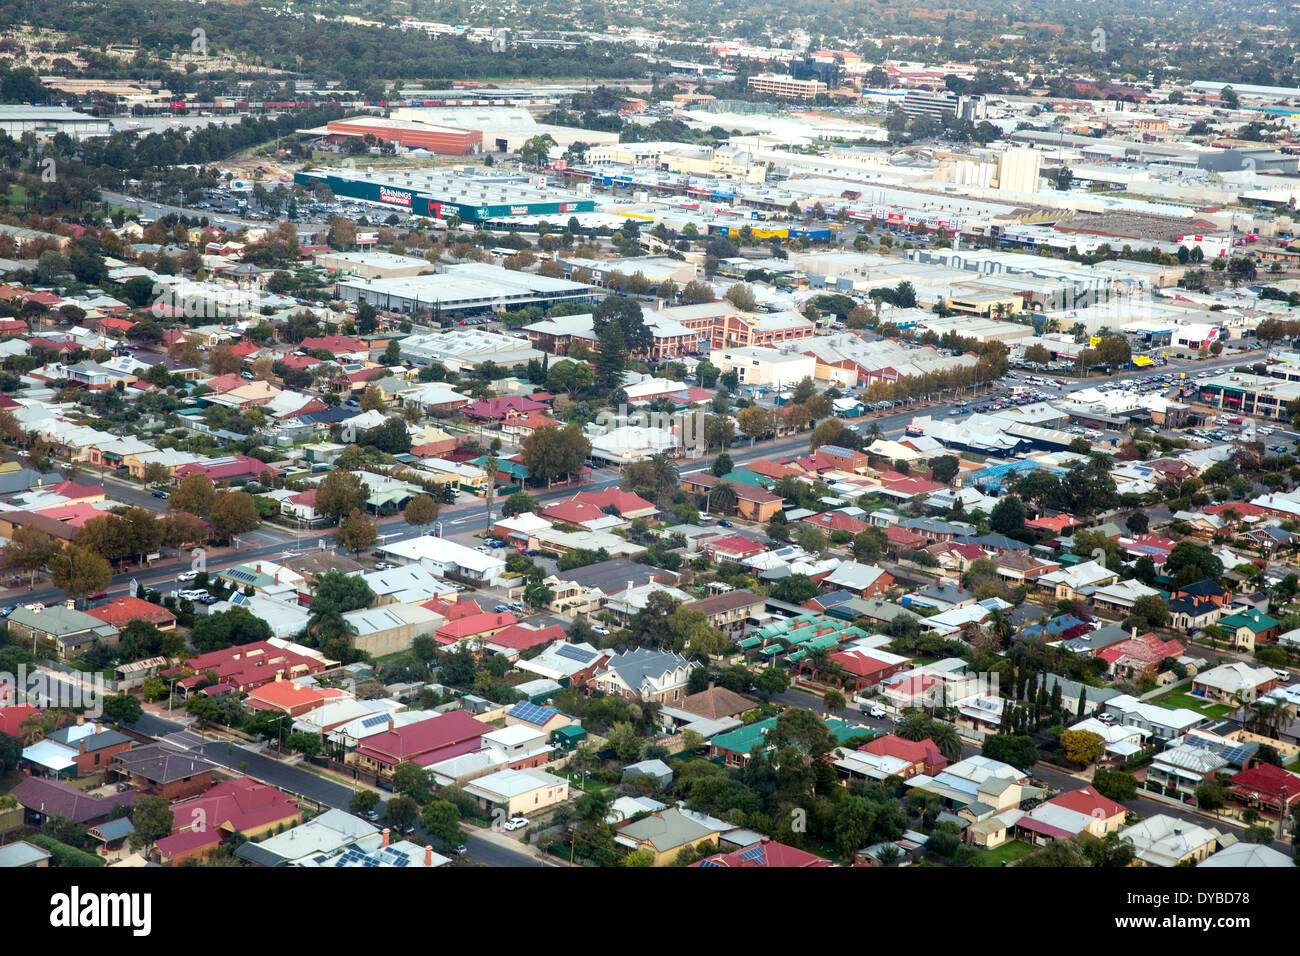 Aerial view of the inner western suburbs of Adelaide Australia - Stock Image